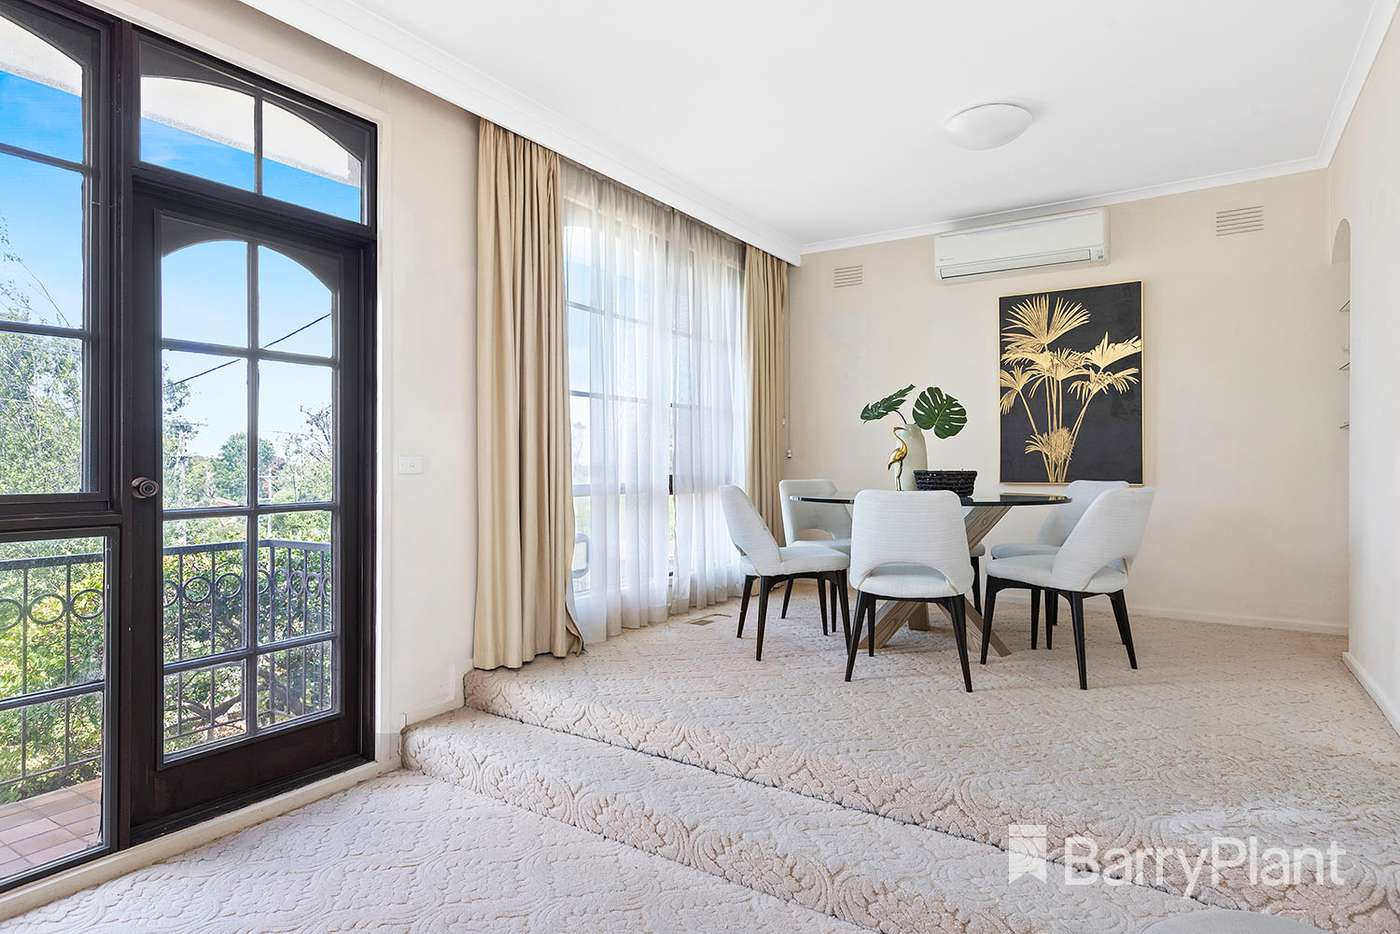 Sixth view of Homely villa listing, 1/434 Balcombe Road, Beaumaris VIC 3193